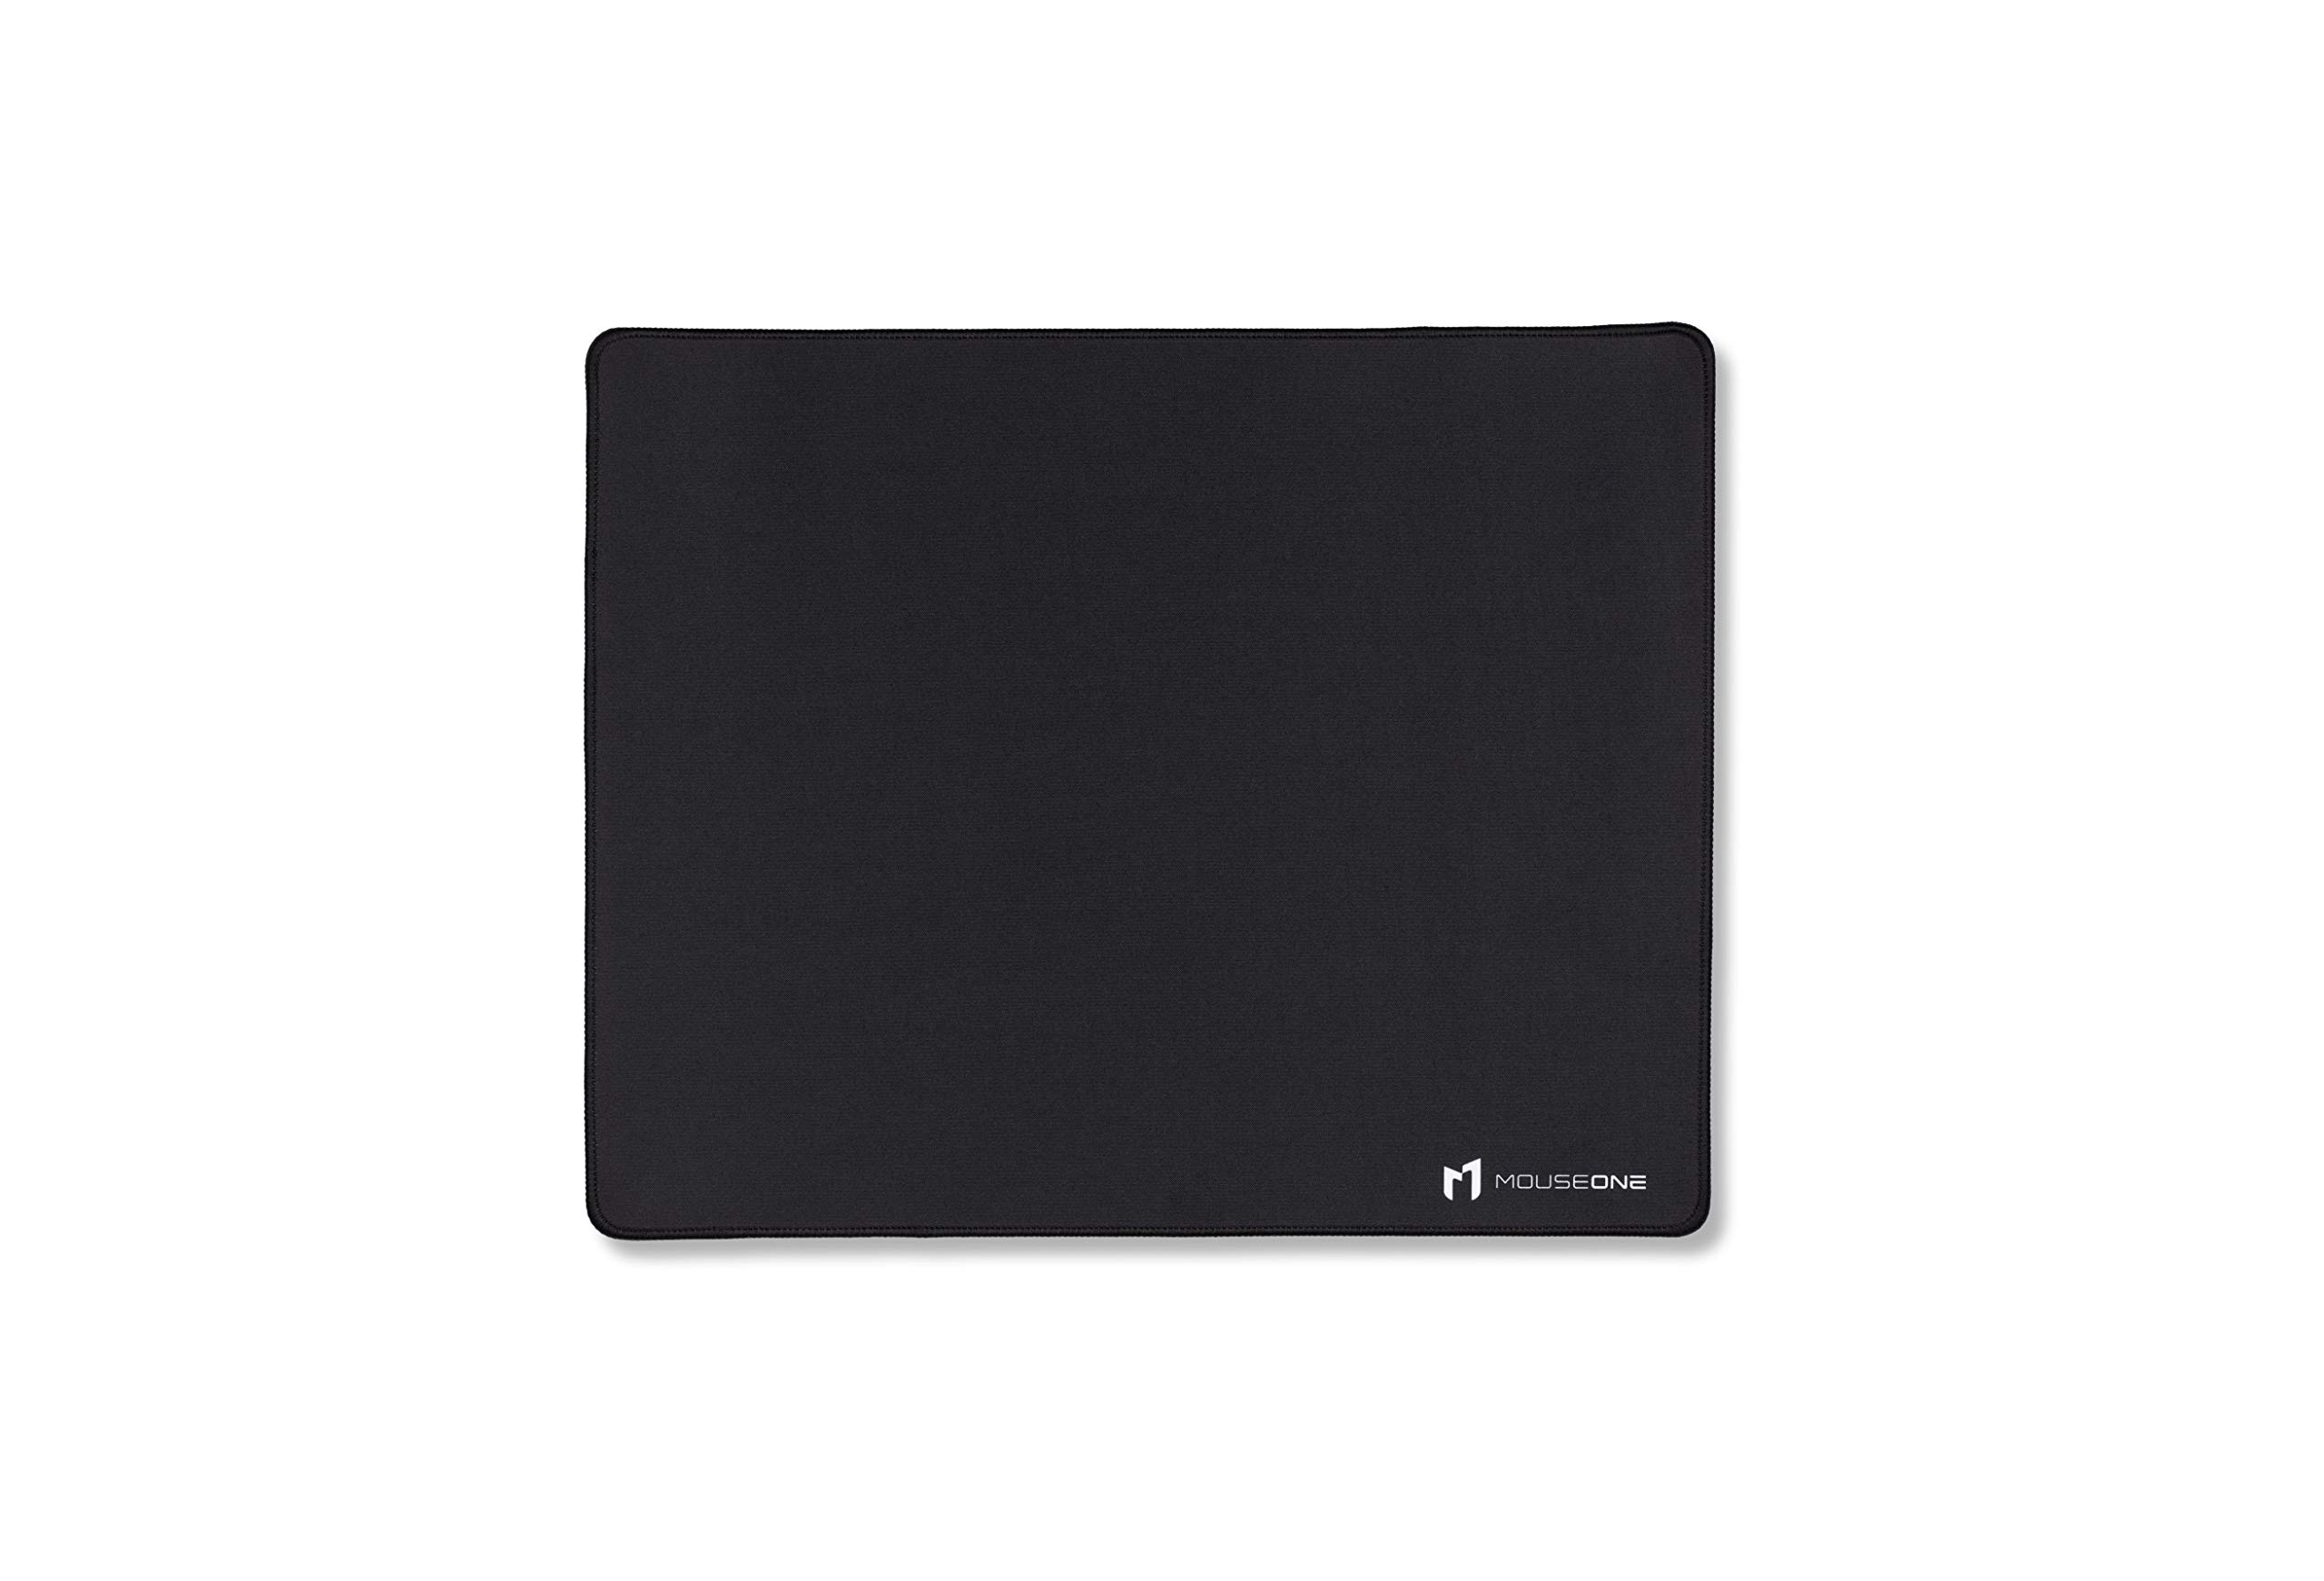 Mouse Pad Gamer Borde Cocido MouseOne -89VXC8G3